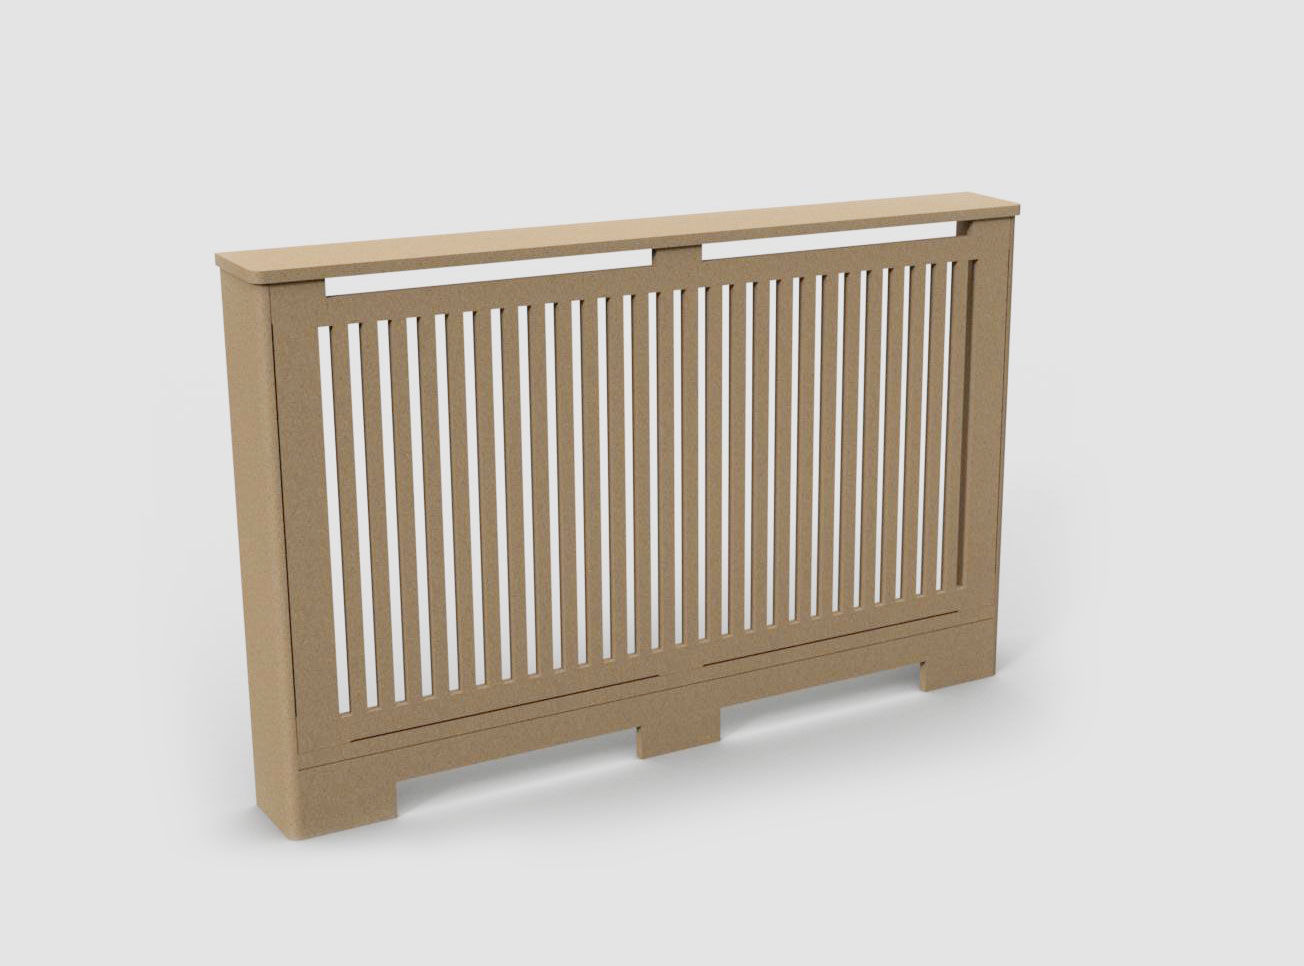 double radiator cover C02-02 Raw MDF